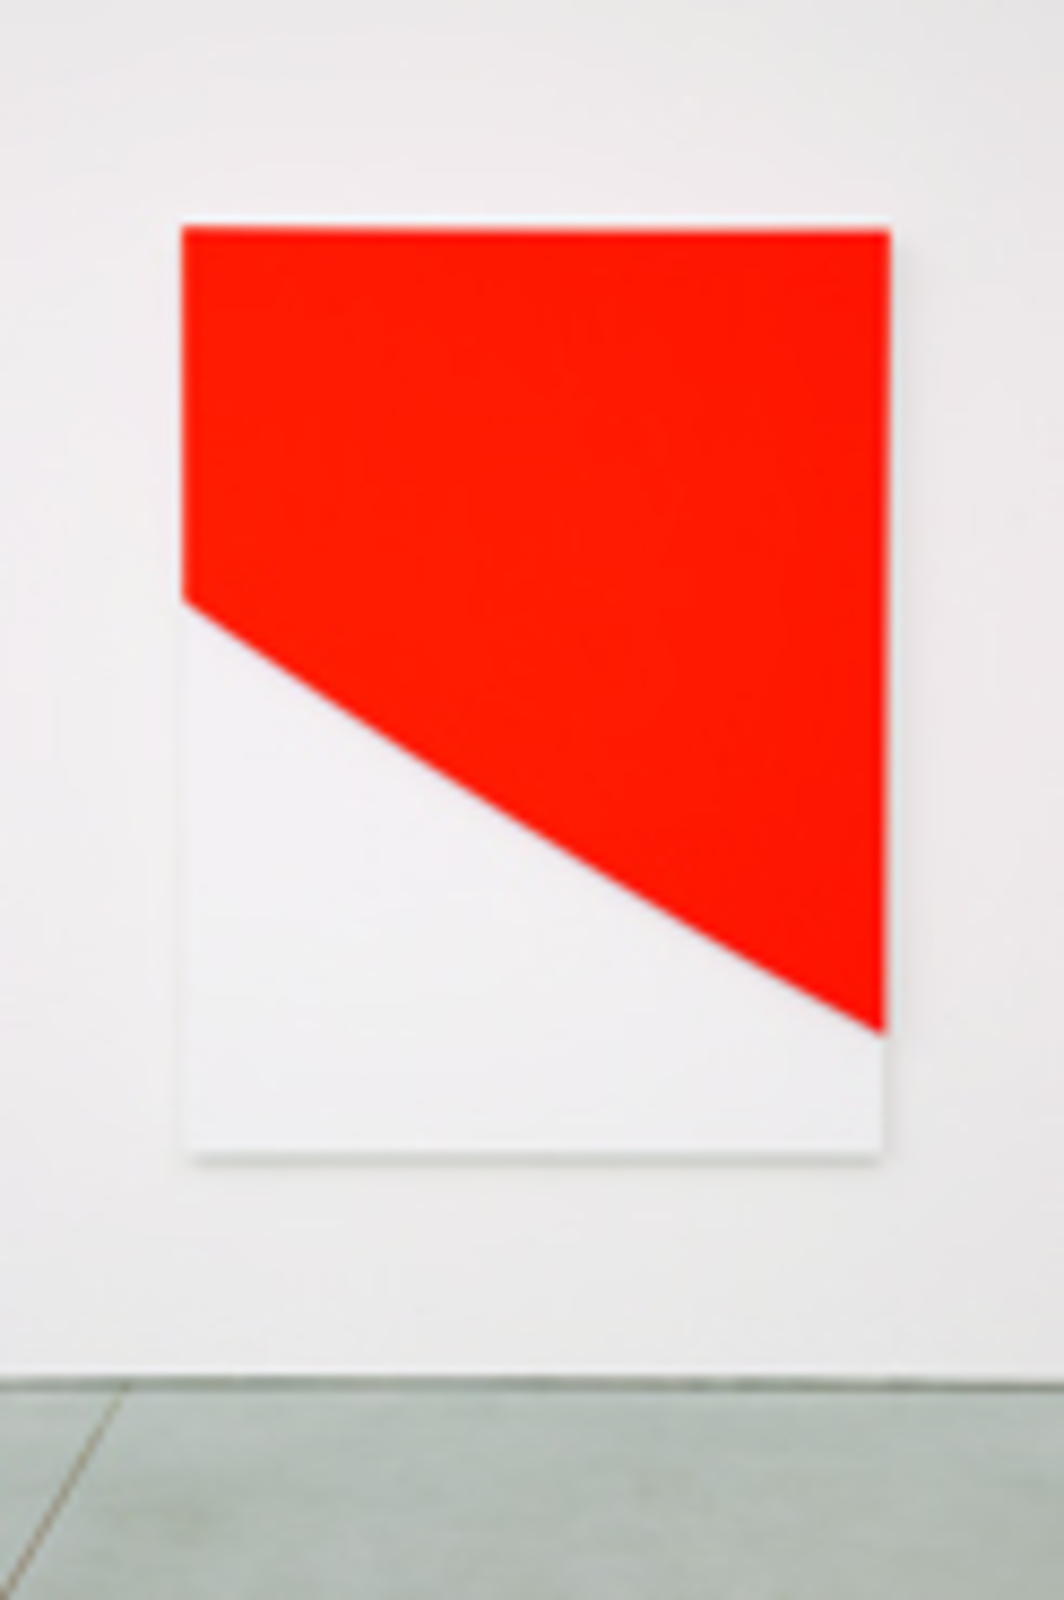 "Ellsworth Kelly, Red Curve in Relief 2009, oil on canvas, two joined panels. 78 x 58 x 2 5/8""."